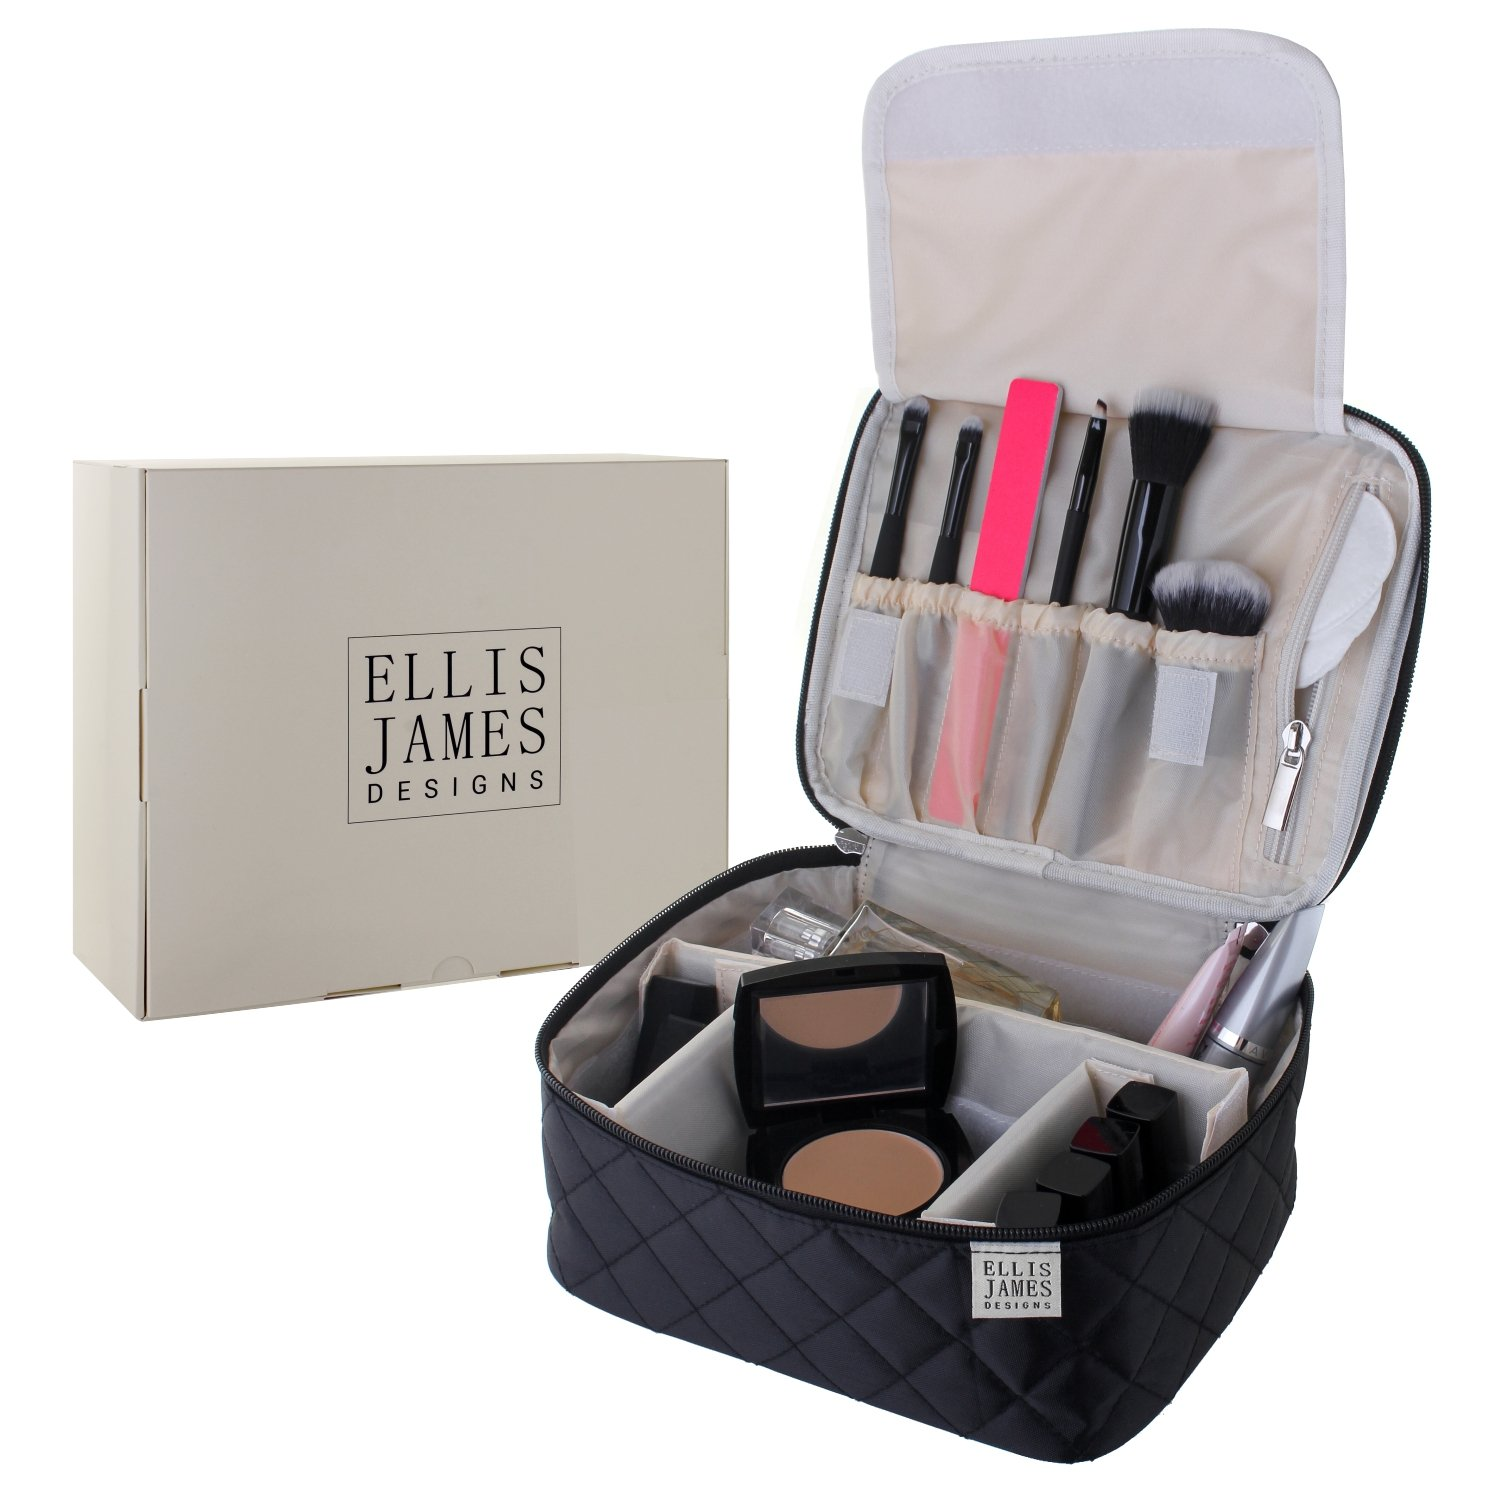 Ellis James Designs Travel Make Up Bag Vanity Case for Women - Black - 2-in-1 Cosmetic Bags Organiser for Makeup and Toiletry Cases - Large Cosmetics Bag with Compartments, Train Case Handle and Brush Pockets ELJ0082